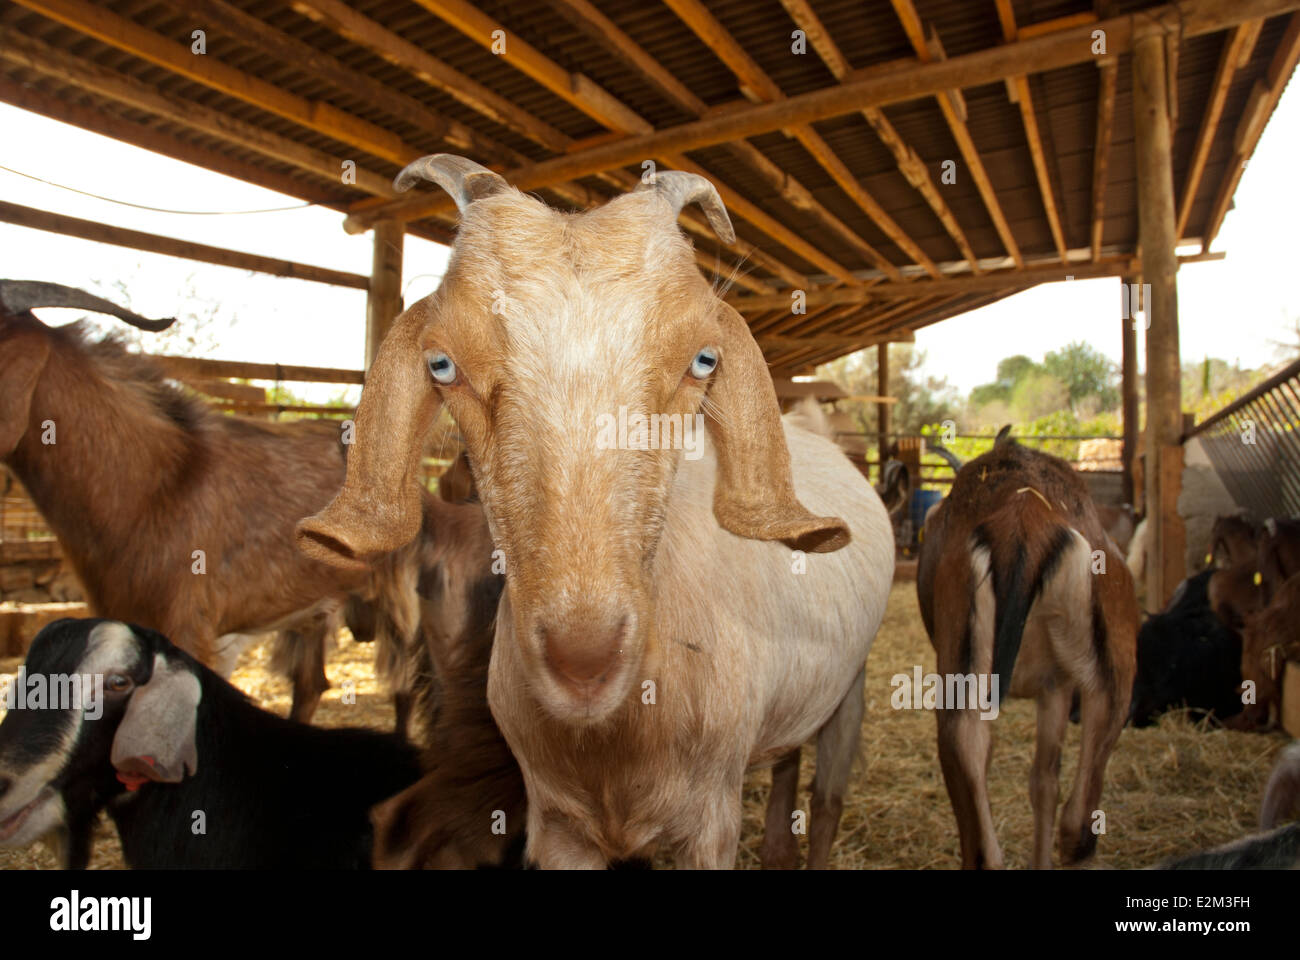 Goat in a shed - Stock Image